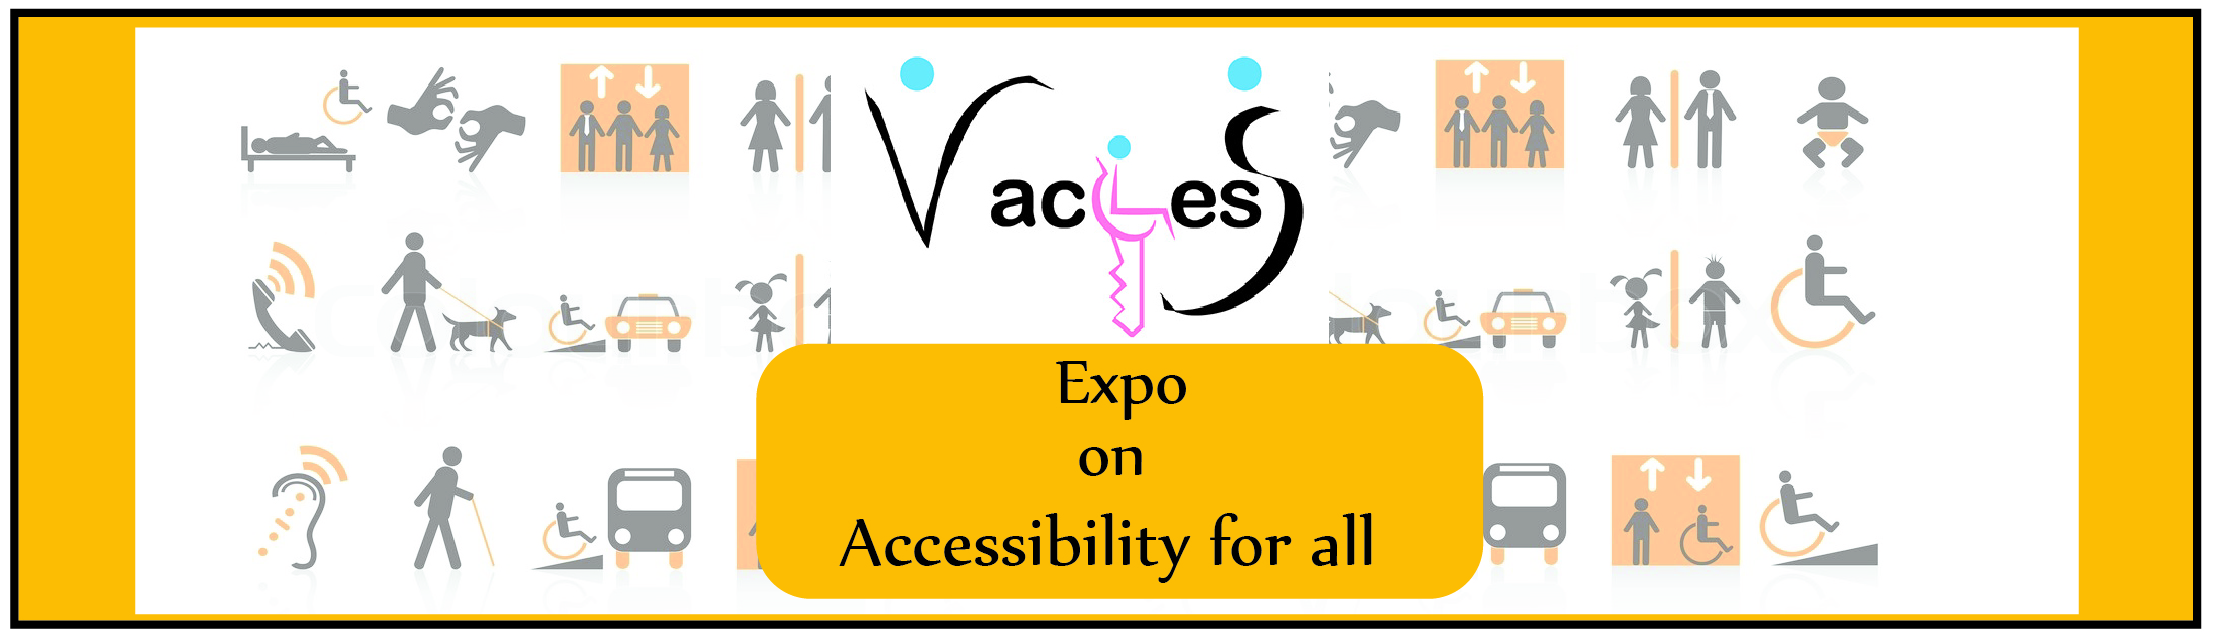 vaccess expo on accessibility for all banner